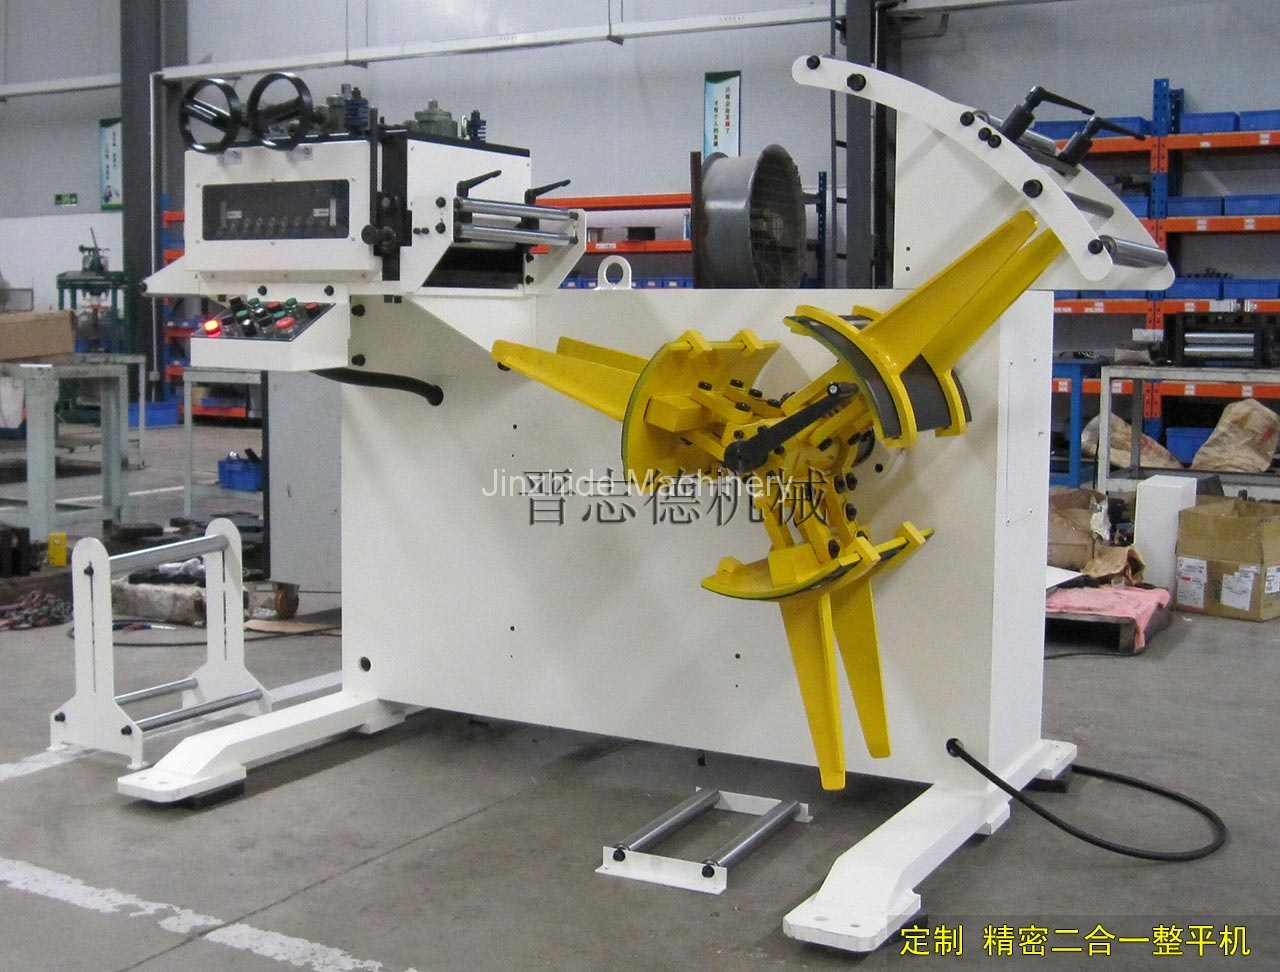 Customized two-in-one leveling machine